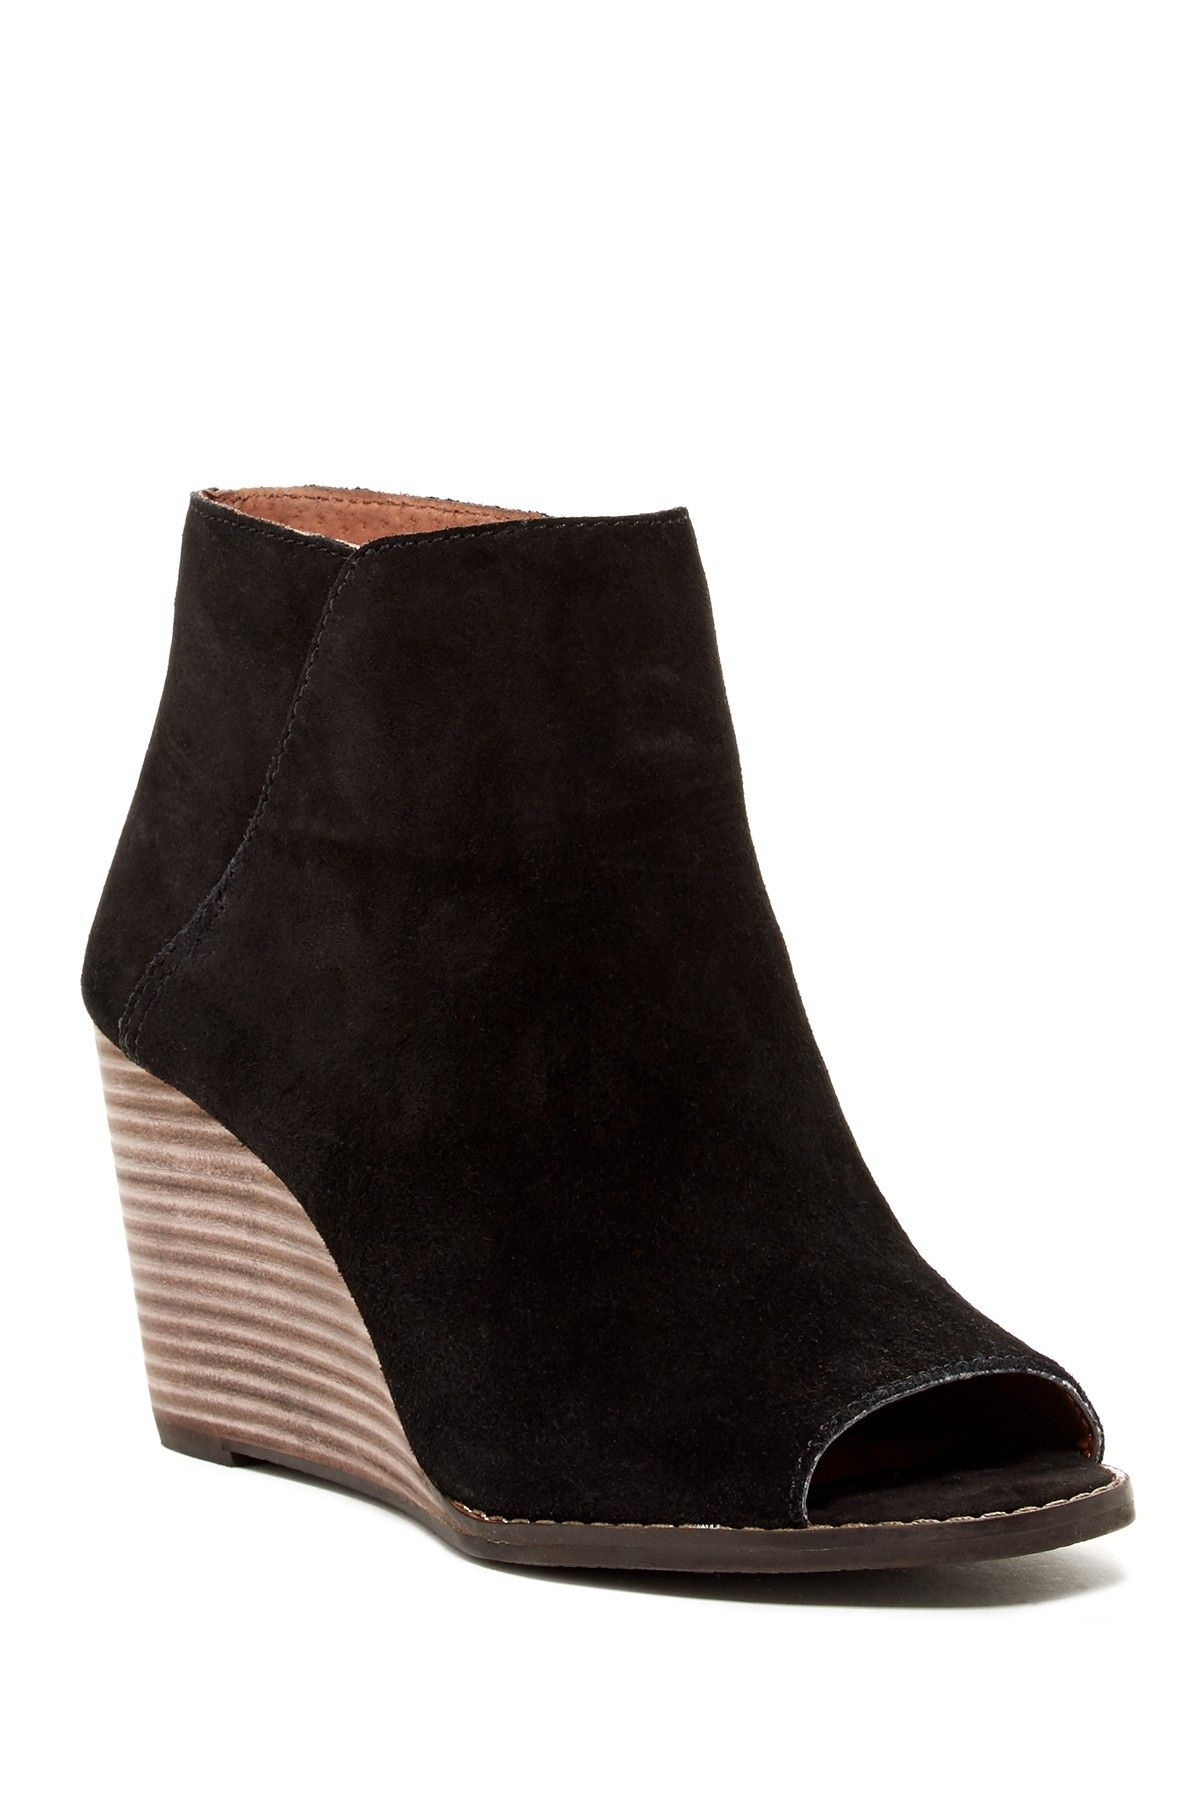 dba72b67883 Jezzah Peep Toe Wedge Bootie